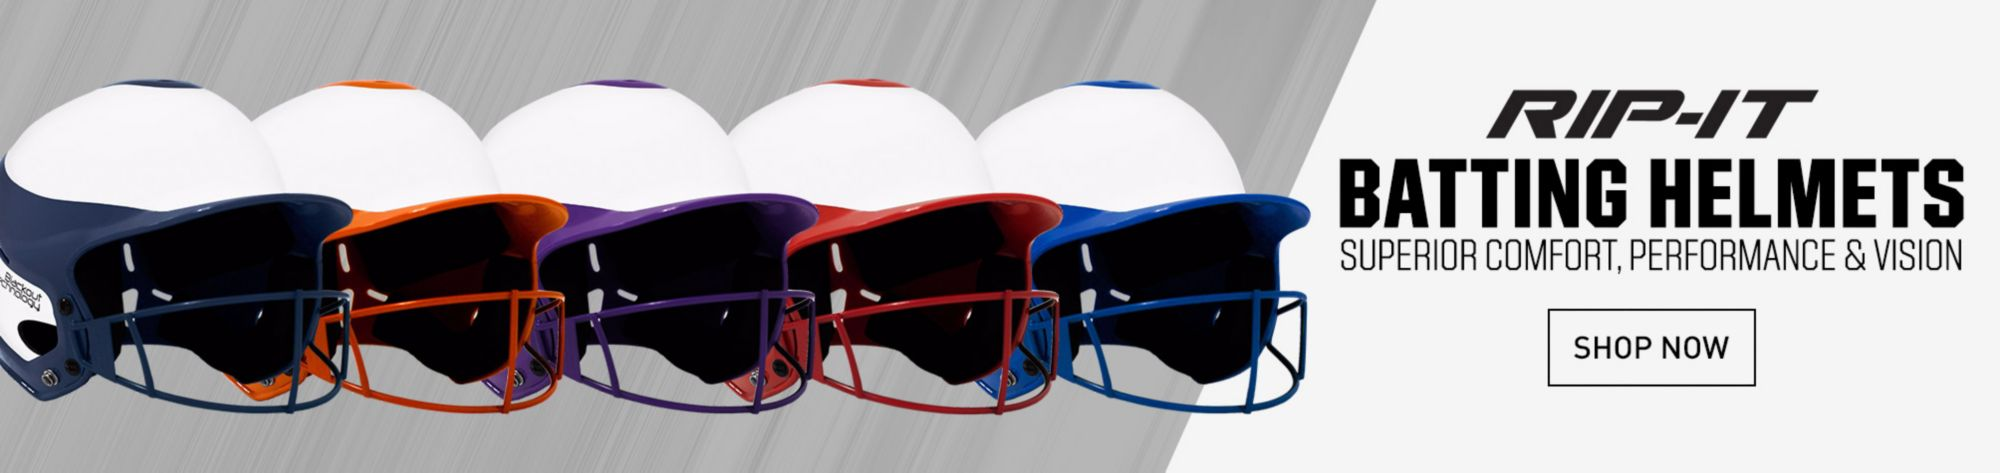 RIP-IT Fastpitch Batting Helmets